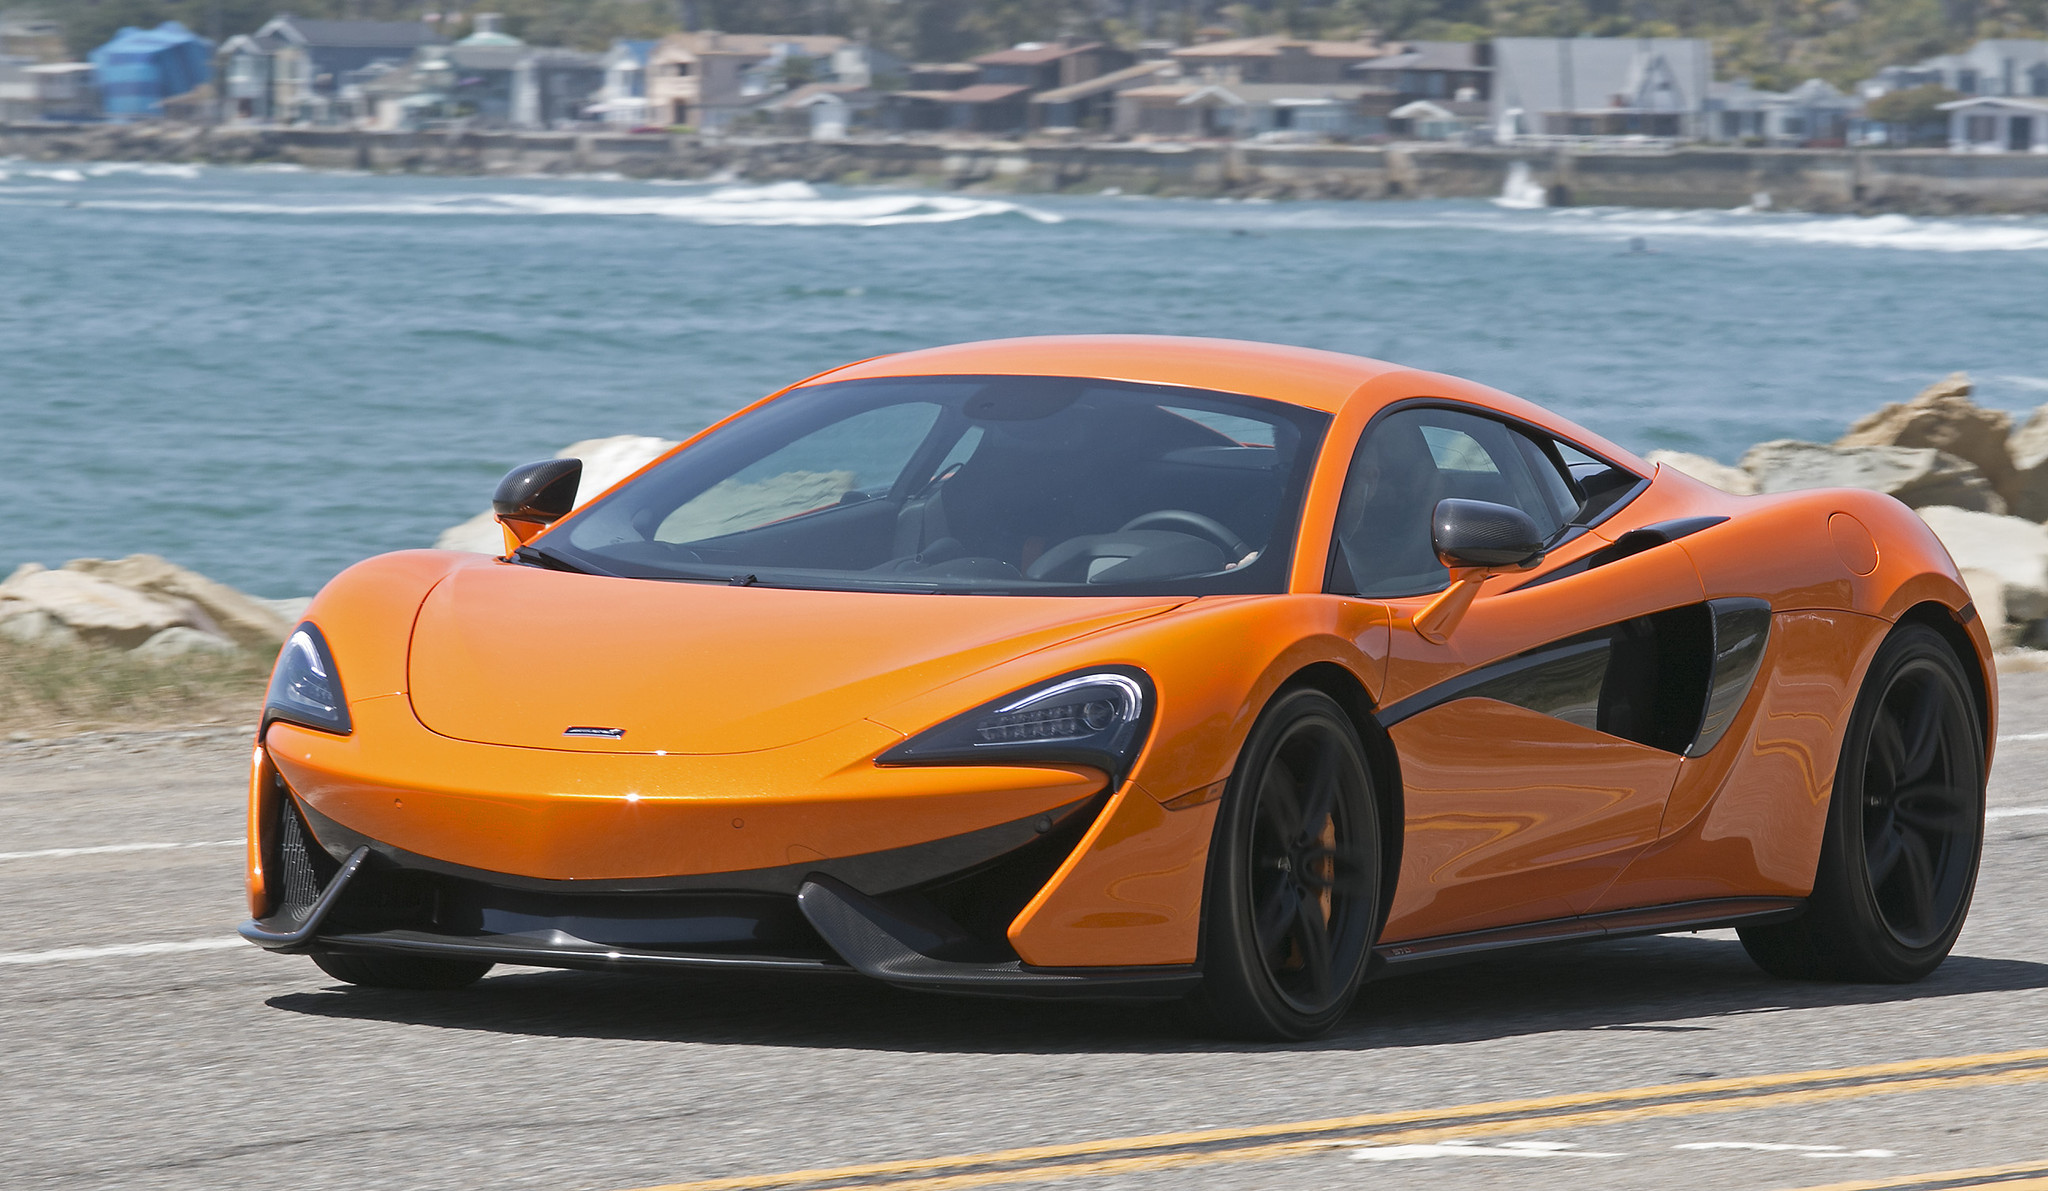 mclaren 570s price. mclaren builds a car for the masses with 200000 price tag la times mclaren 570s